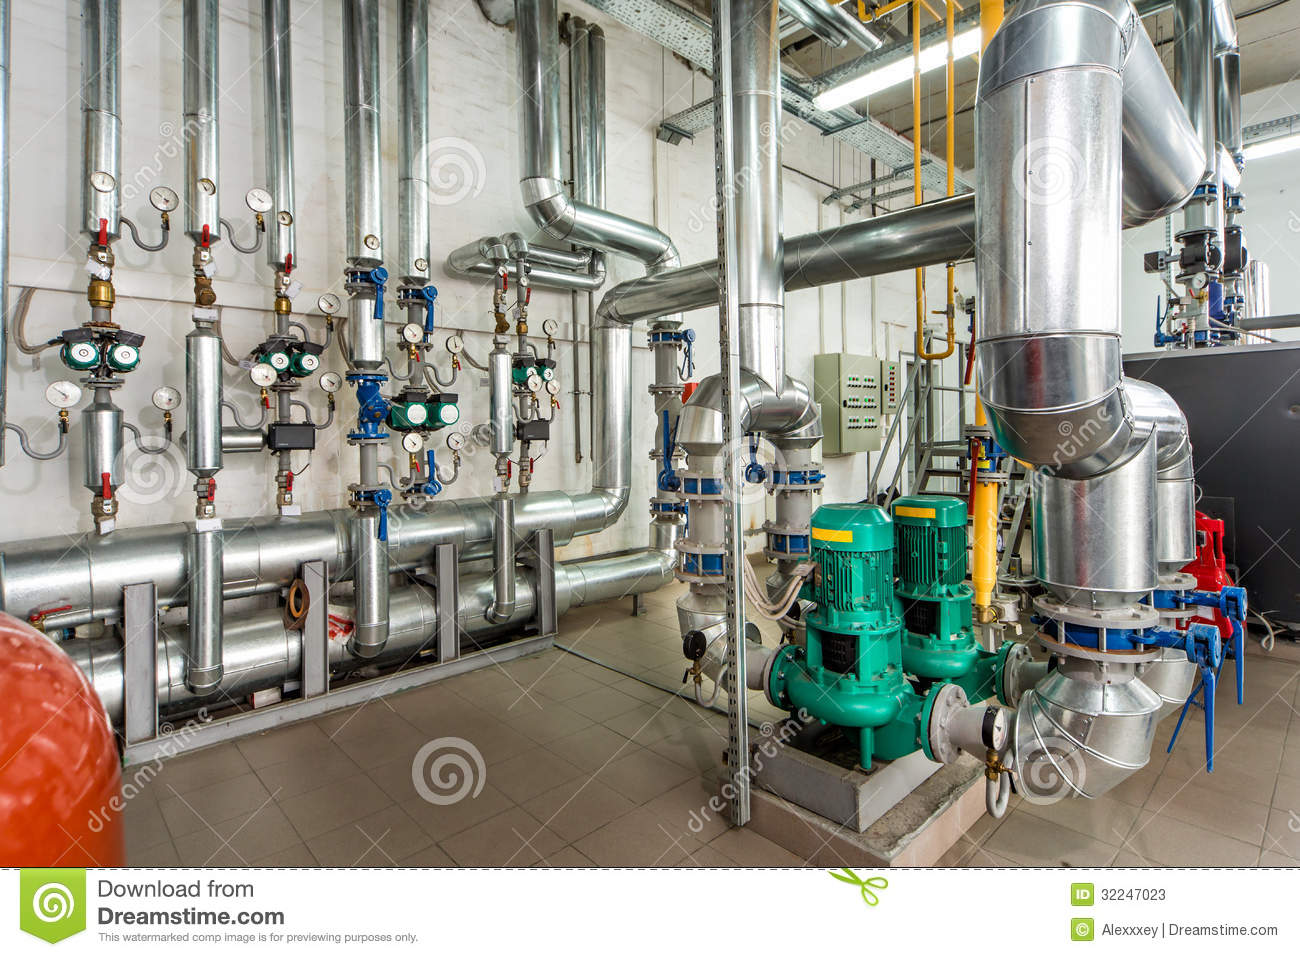 Interior Gas Boiler Room With Multiple Pumps And Piping